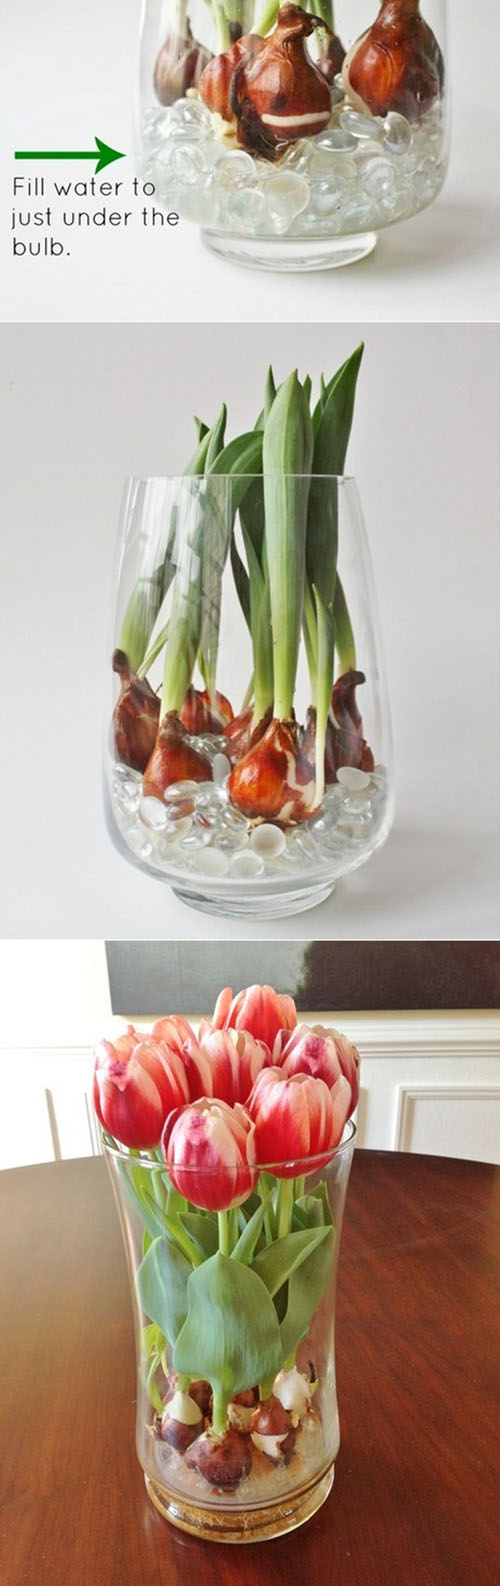 Forcing tulip bulbs in water11.